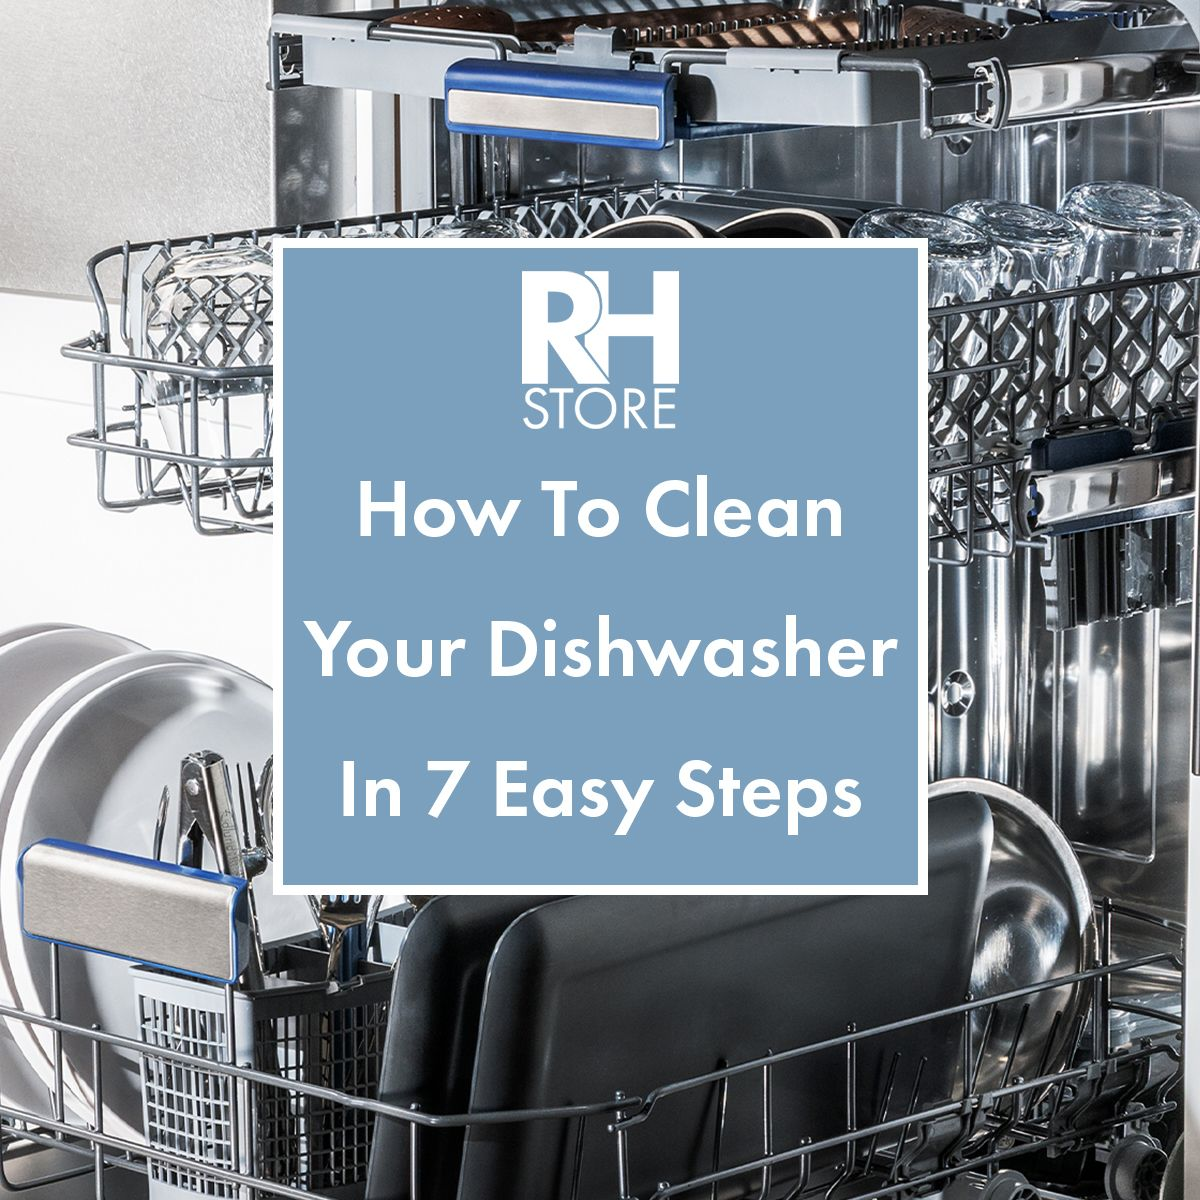 How To Clean Your Dishwasher In 7 Easy Steps